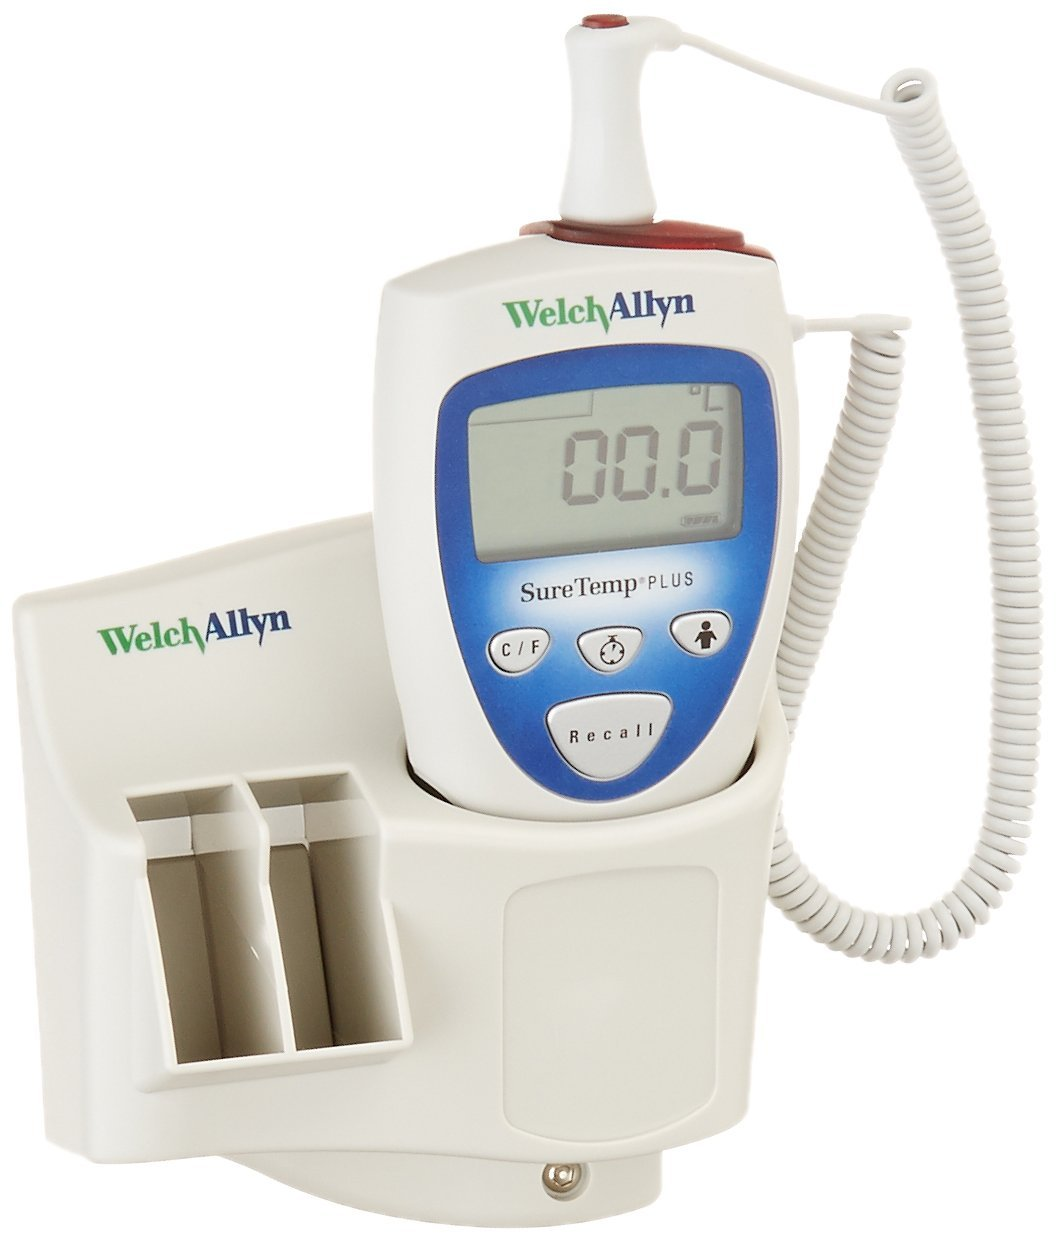 Welch Allyn 01692-201 SureTemp Plus 692 Electronic Thermometer with Wall Mount, Security System with ID Location Field, 4' Cord and Rectal Probe with Probe Well